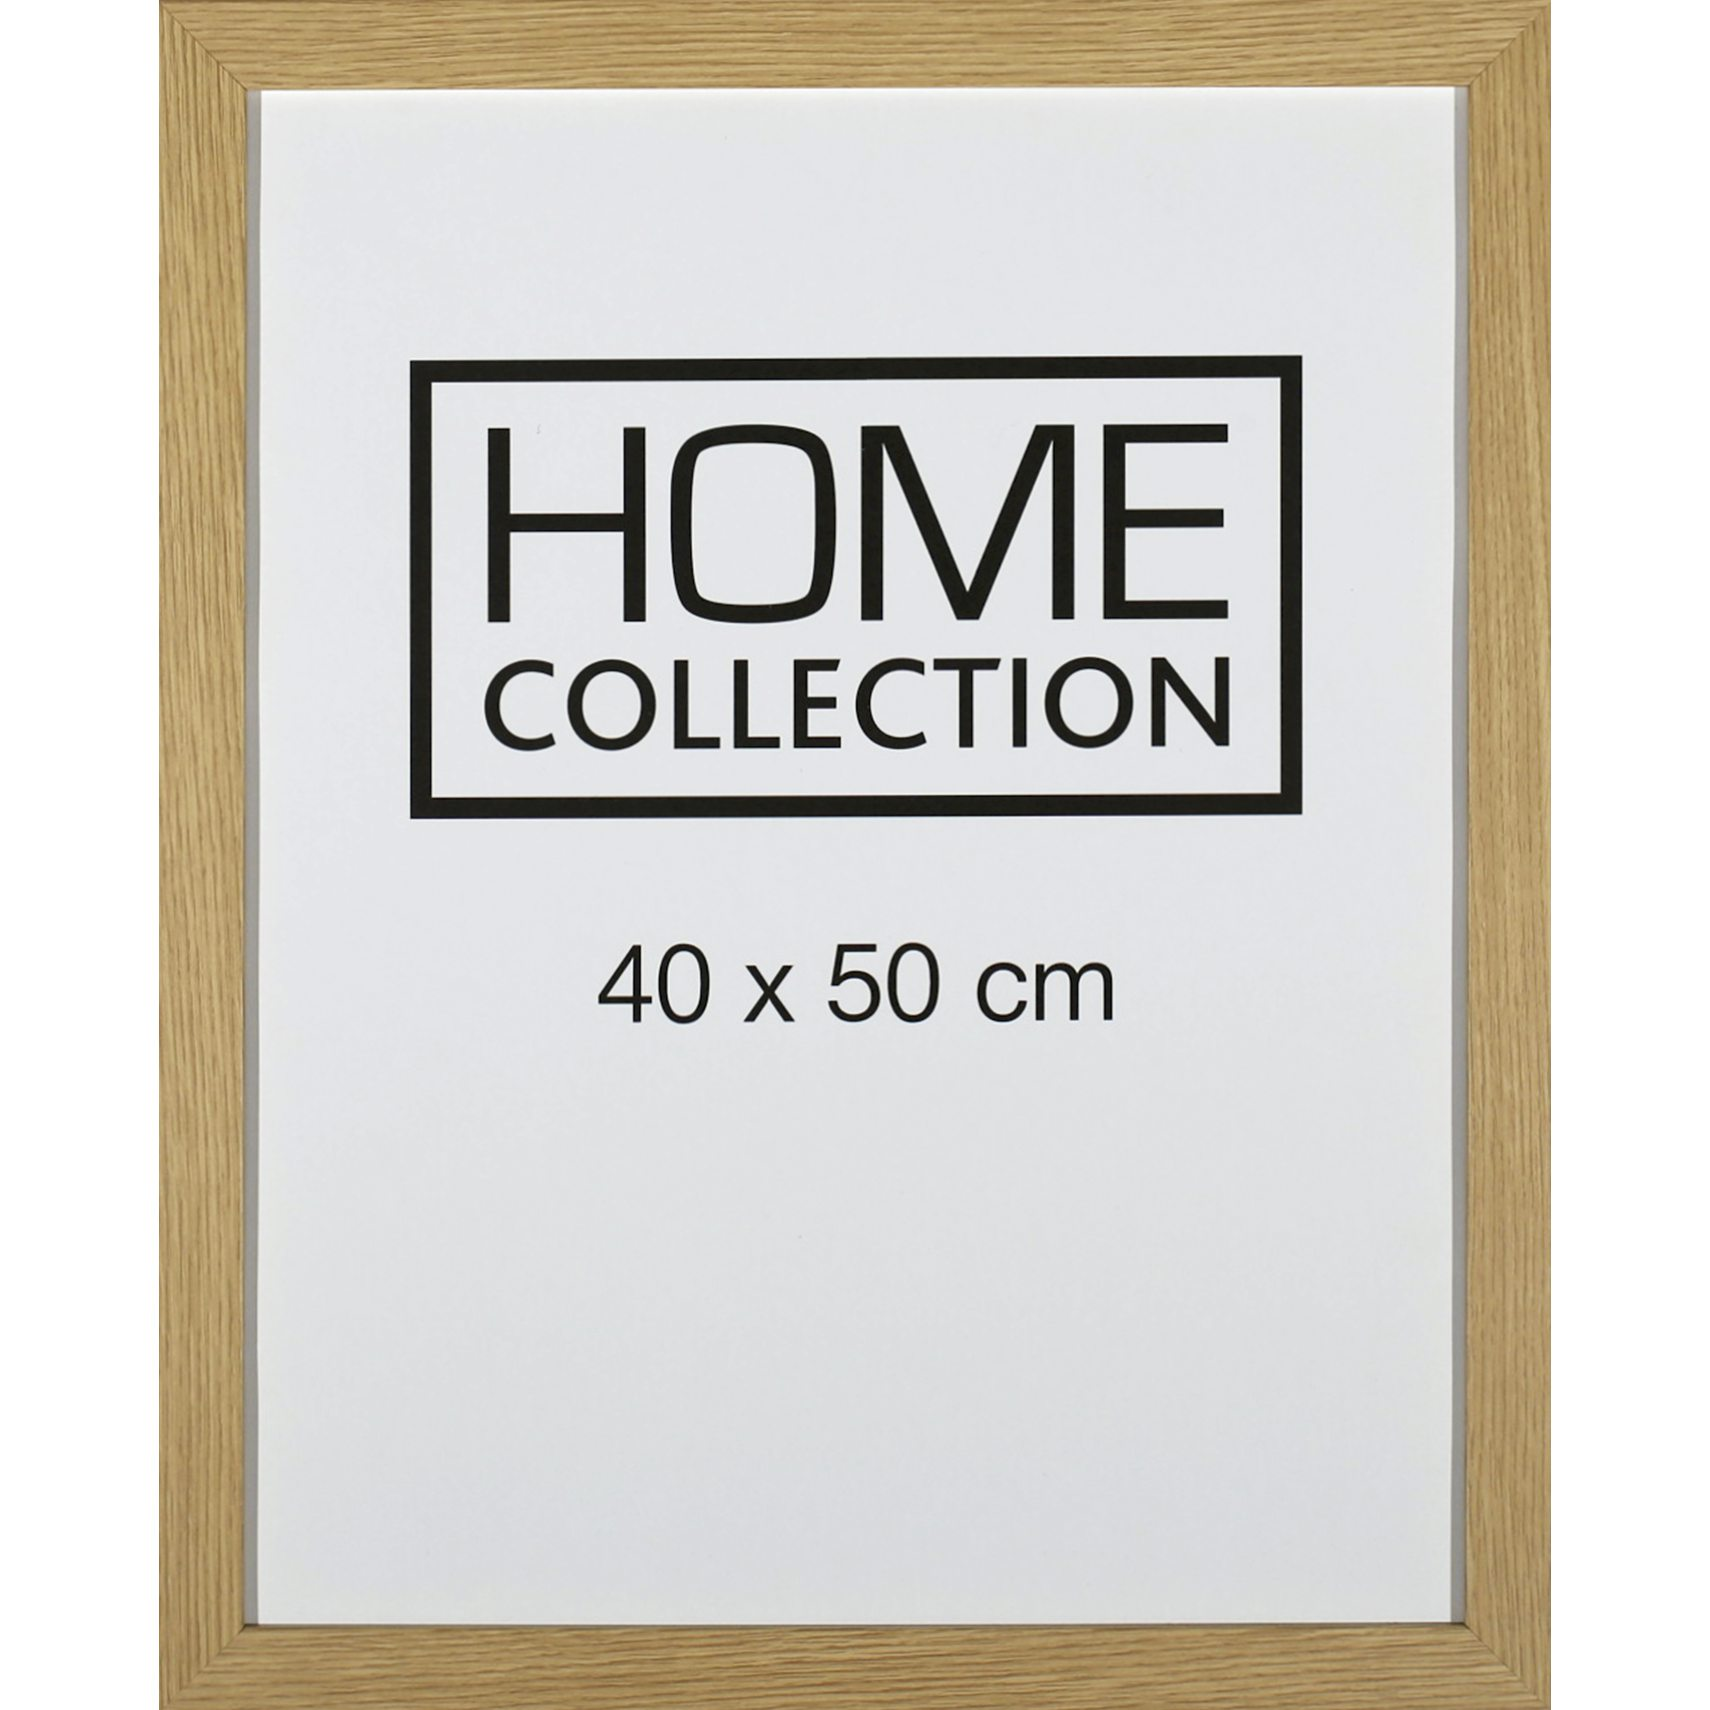 HOME COLLECTION Ramme - Egetræ ramme